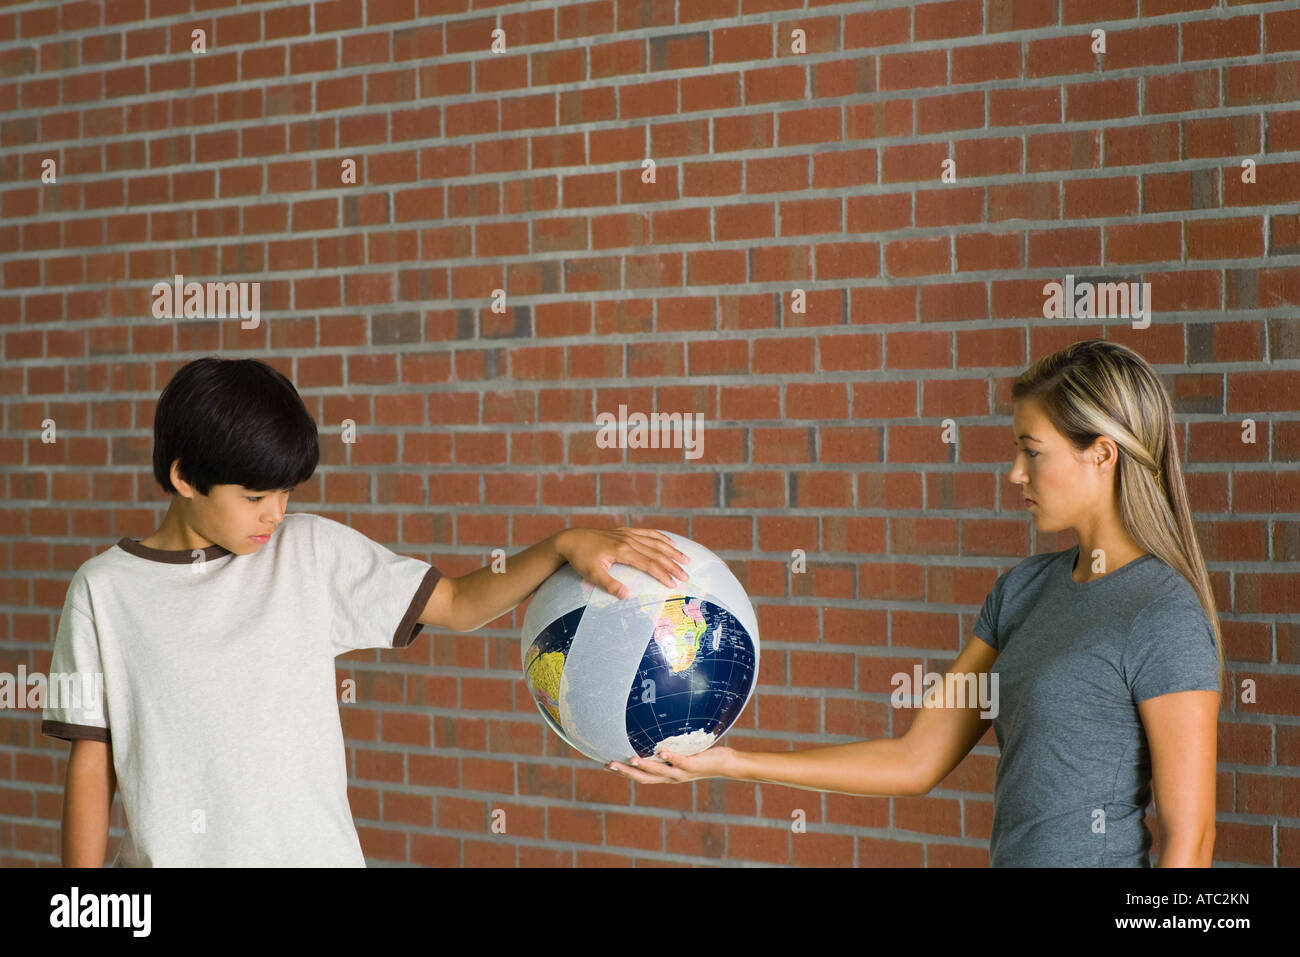 Boy and woman holding bandaged globe together - Stock Image